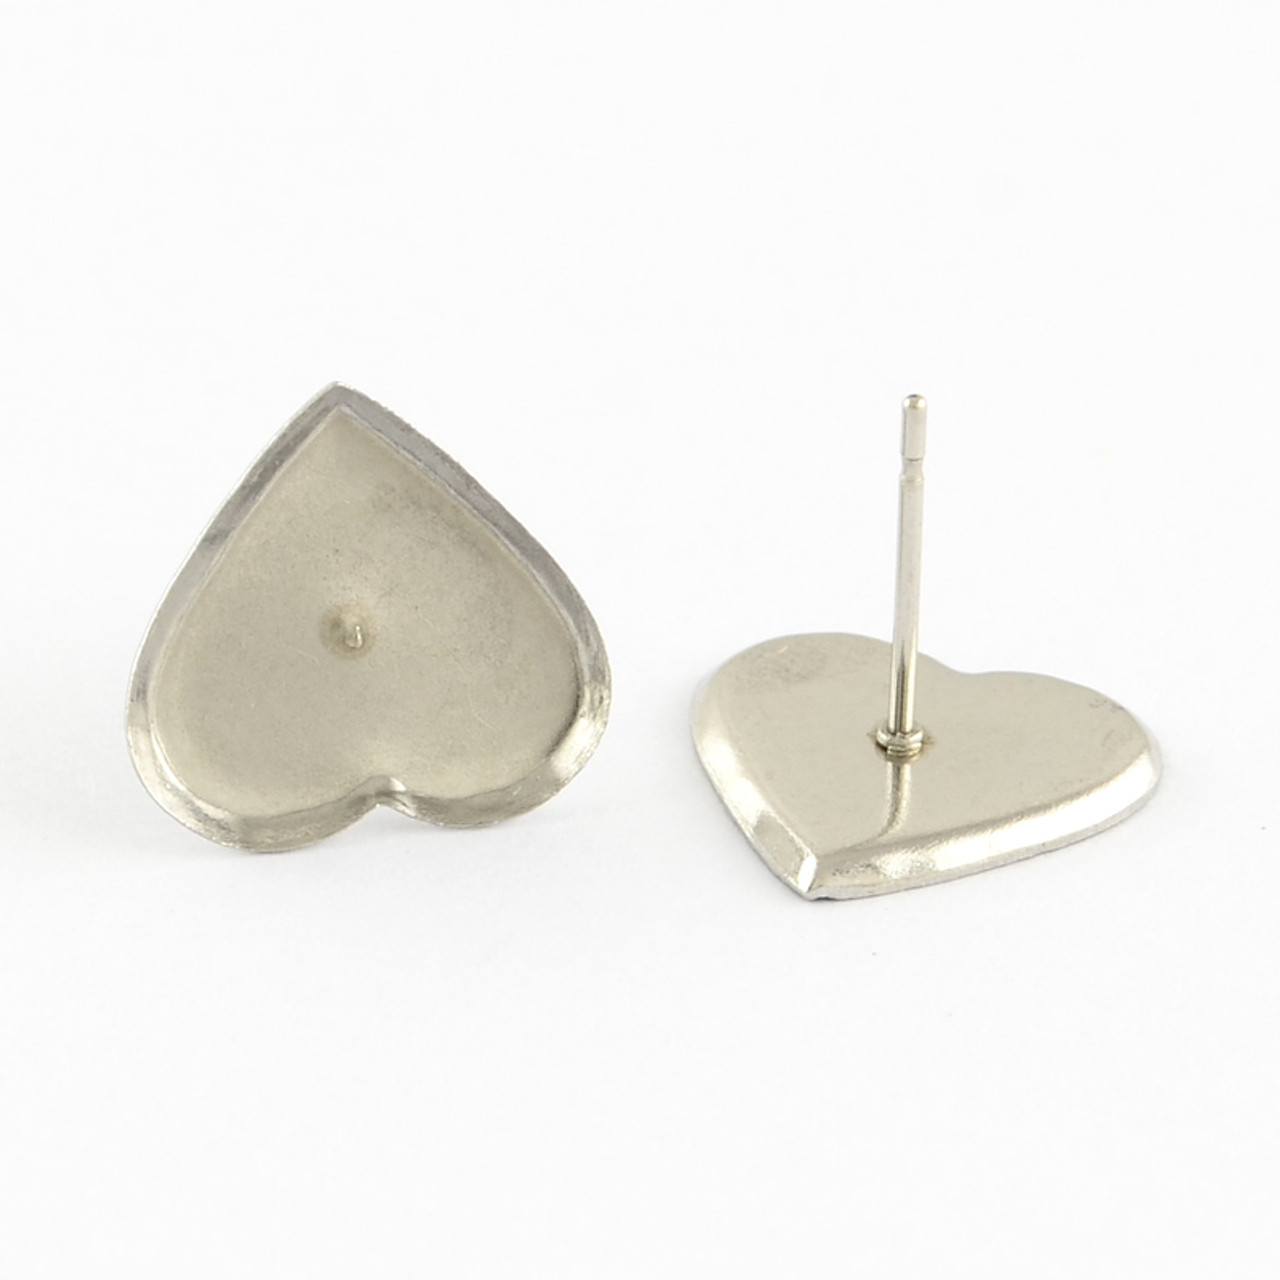 304 Stainless Steel Heart Earring Posts 9x8x1.5mm Pin 0.5mm 10/pkg